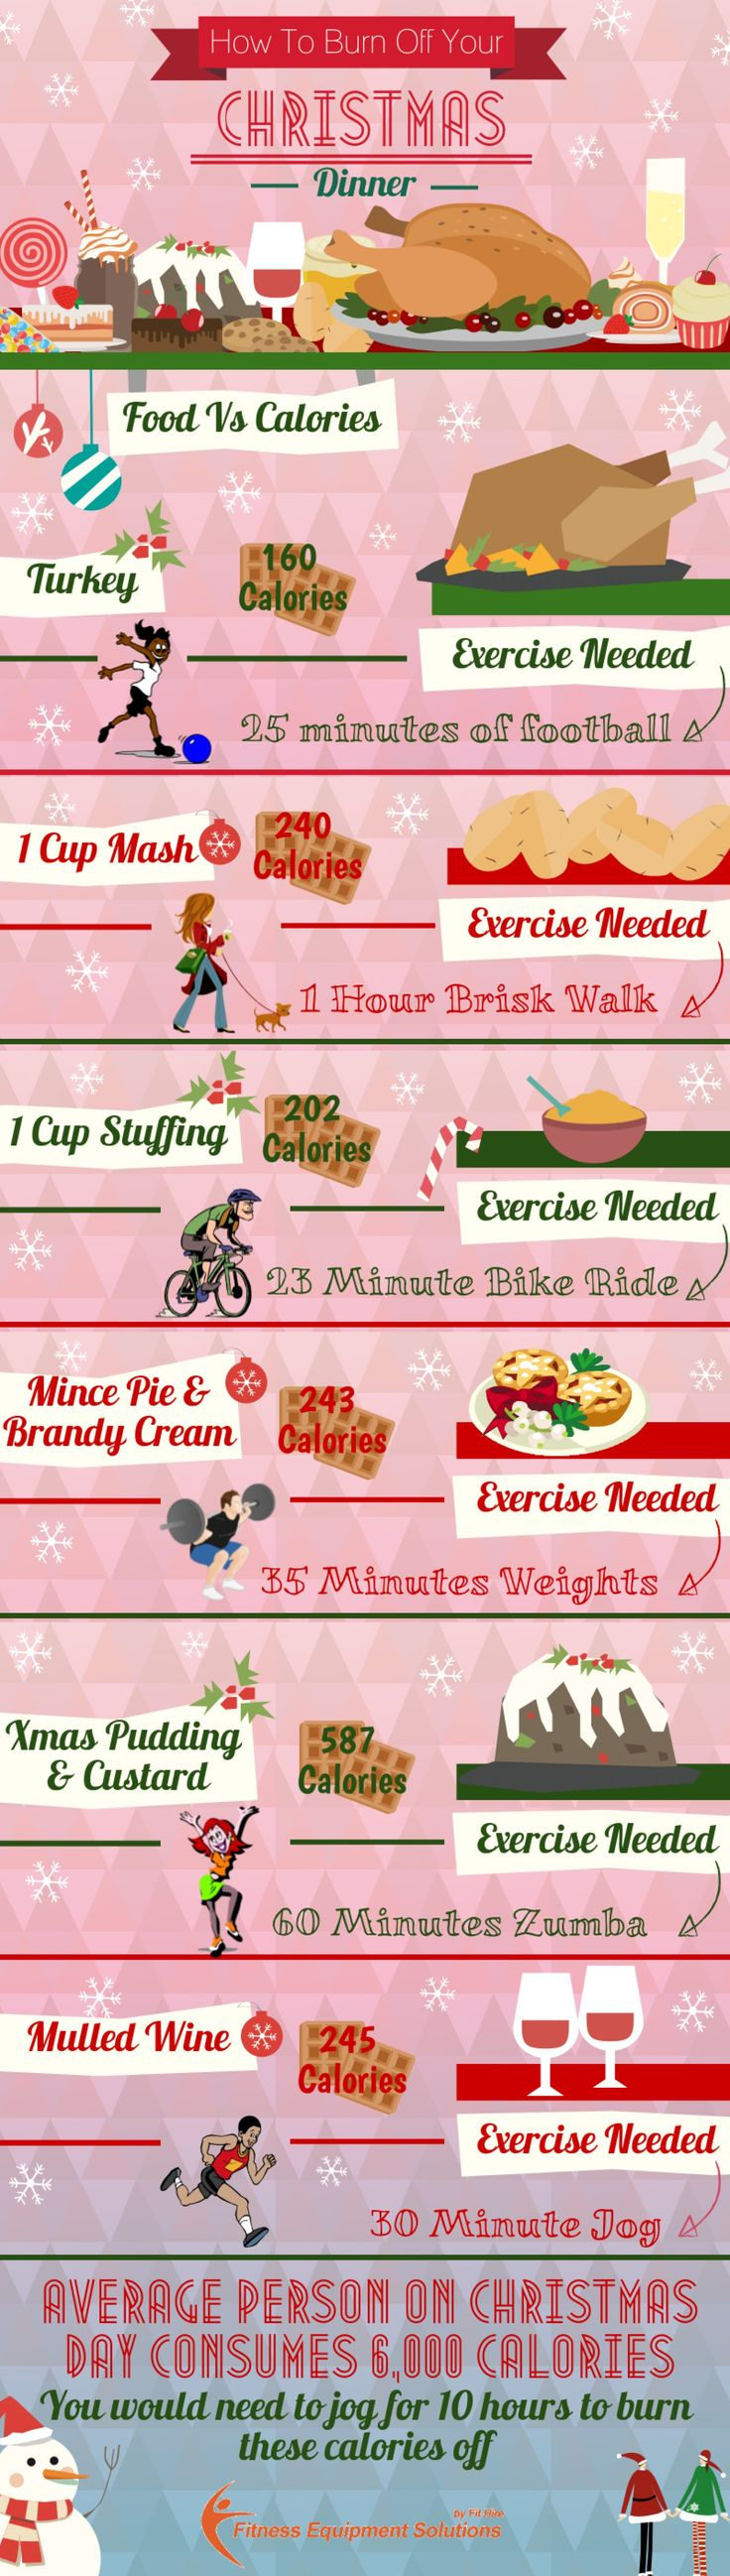 Christmas Dinner What Calories You eat & how to burn them off http://www.fithire.com